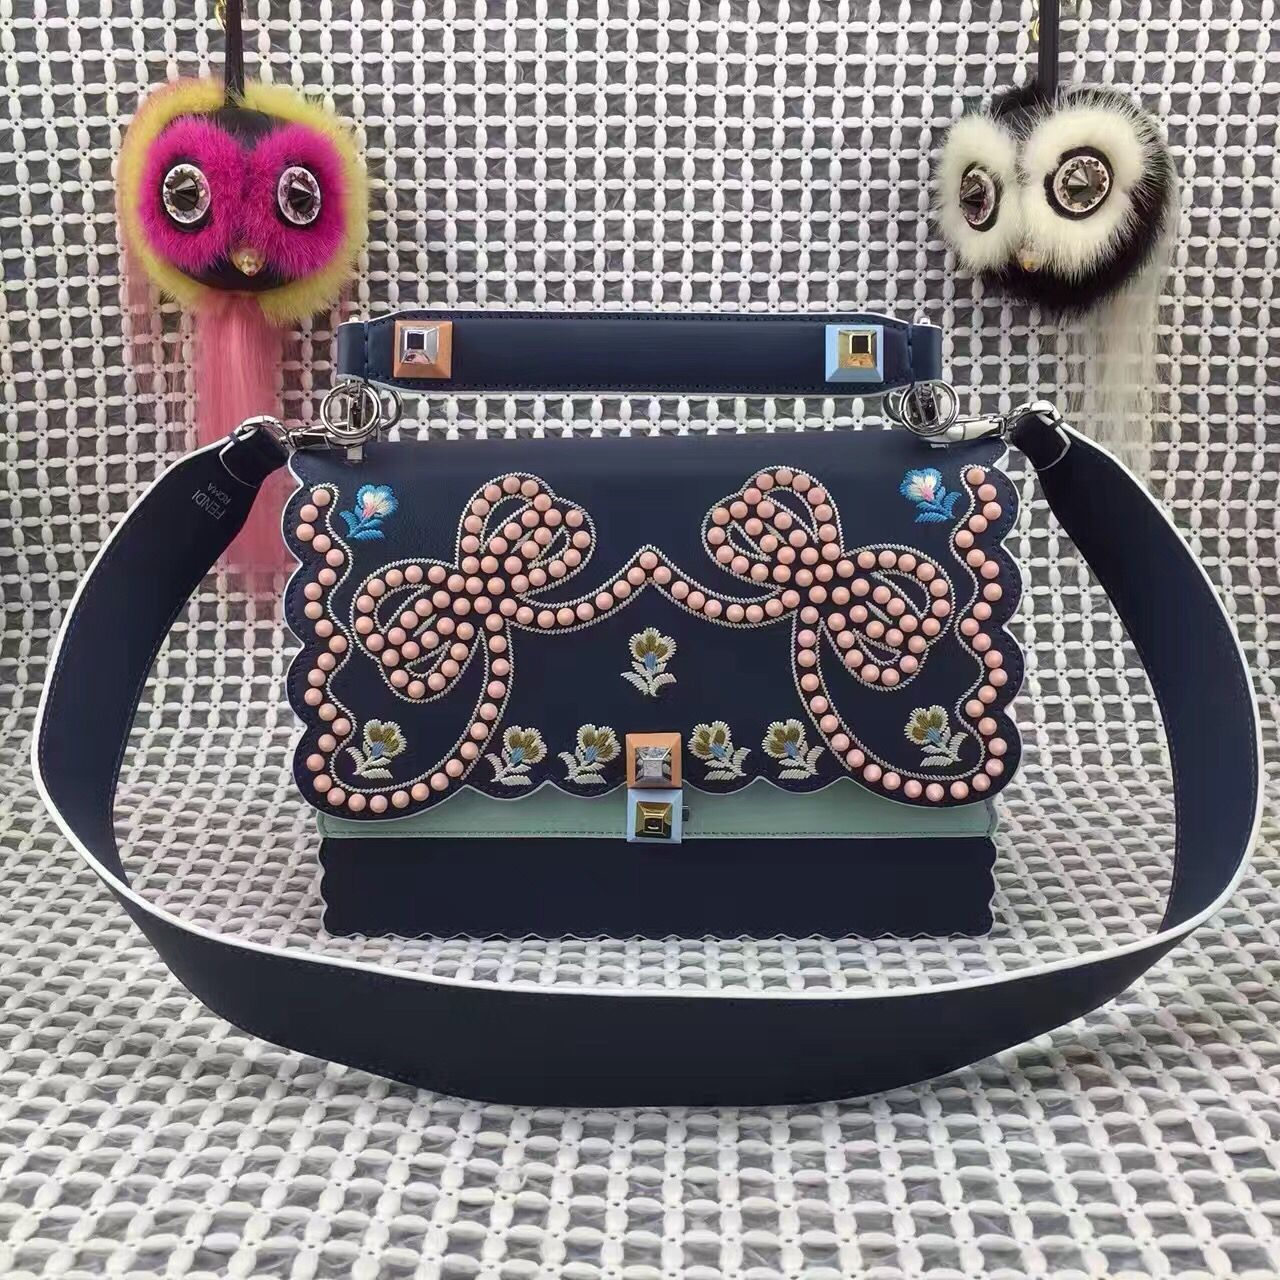 eb810161212a Fendi Multicolor Studded Embellished and Floral Embroidered Kan I Crossbody  Mini Bag Deep Blue Spring 2017